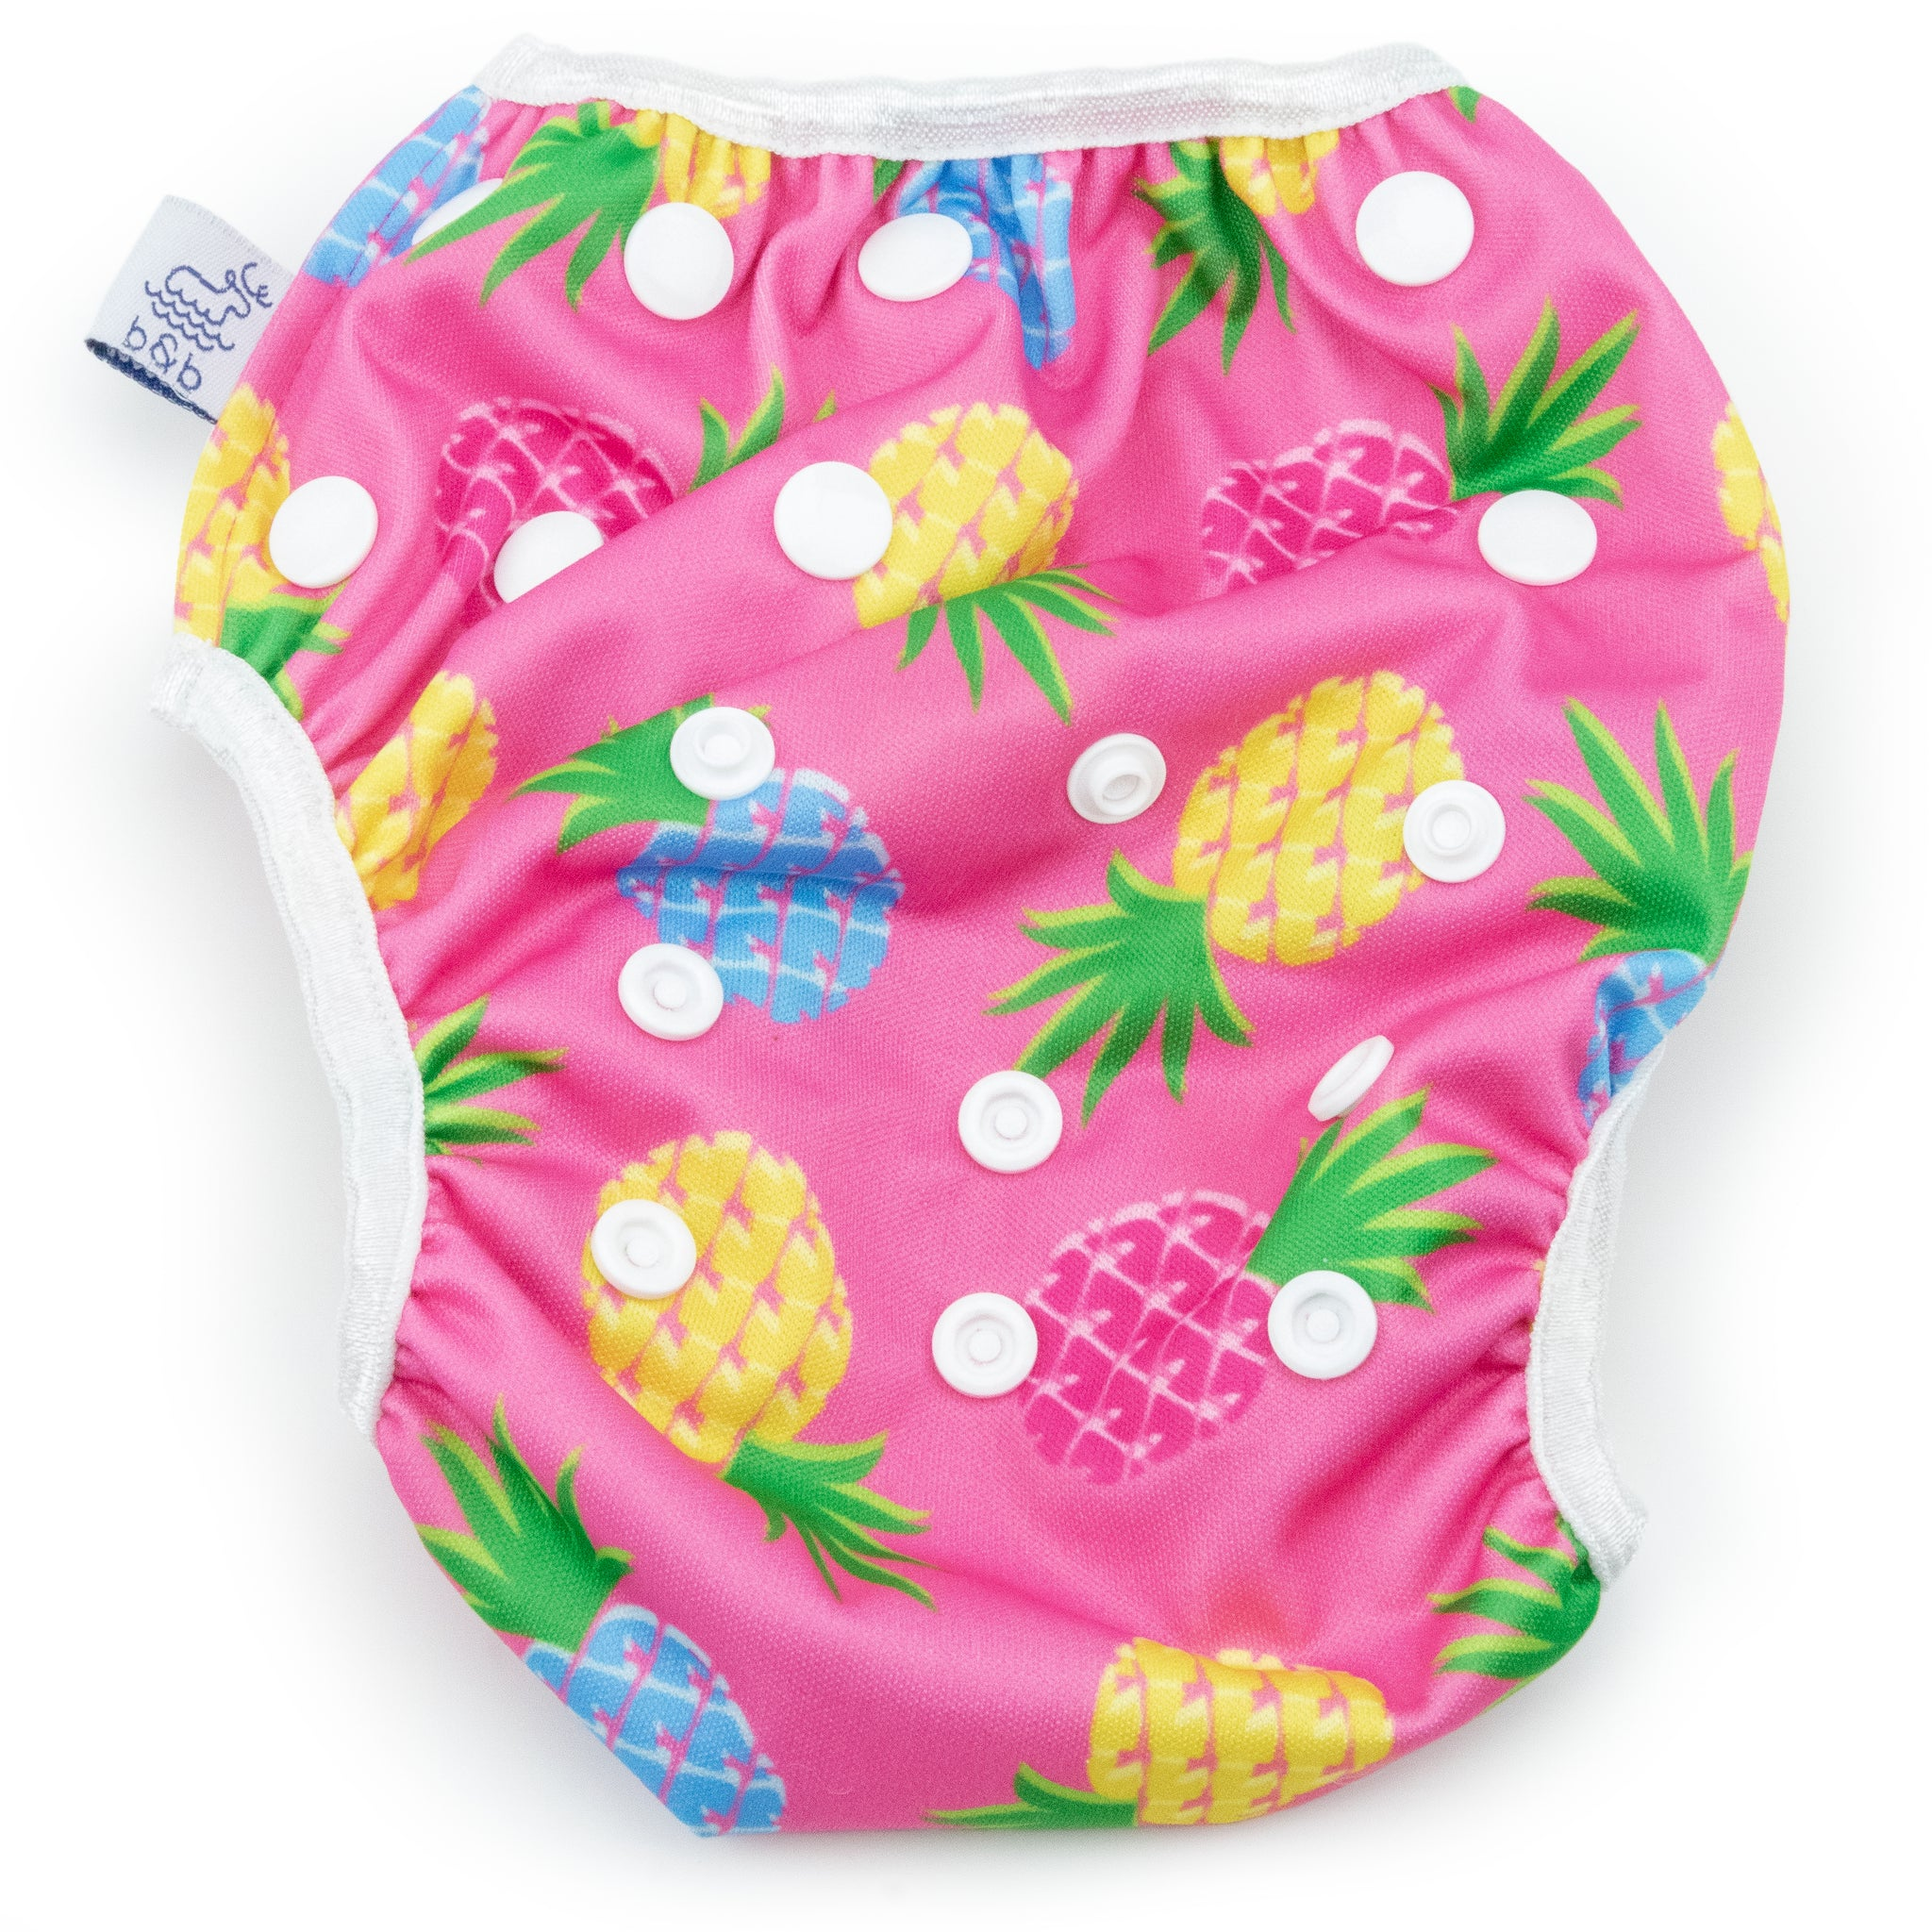 Beau and Belle Littles Swim Diaper, Regular Size, light pink background with yellow, dark pink, and blue pineapples, flat lay, front view